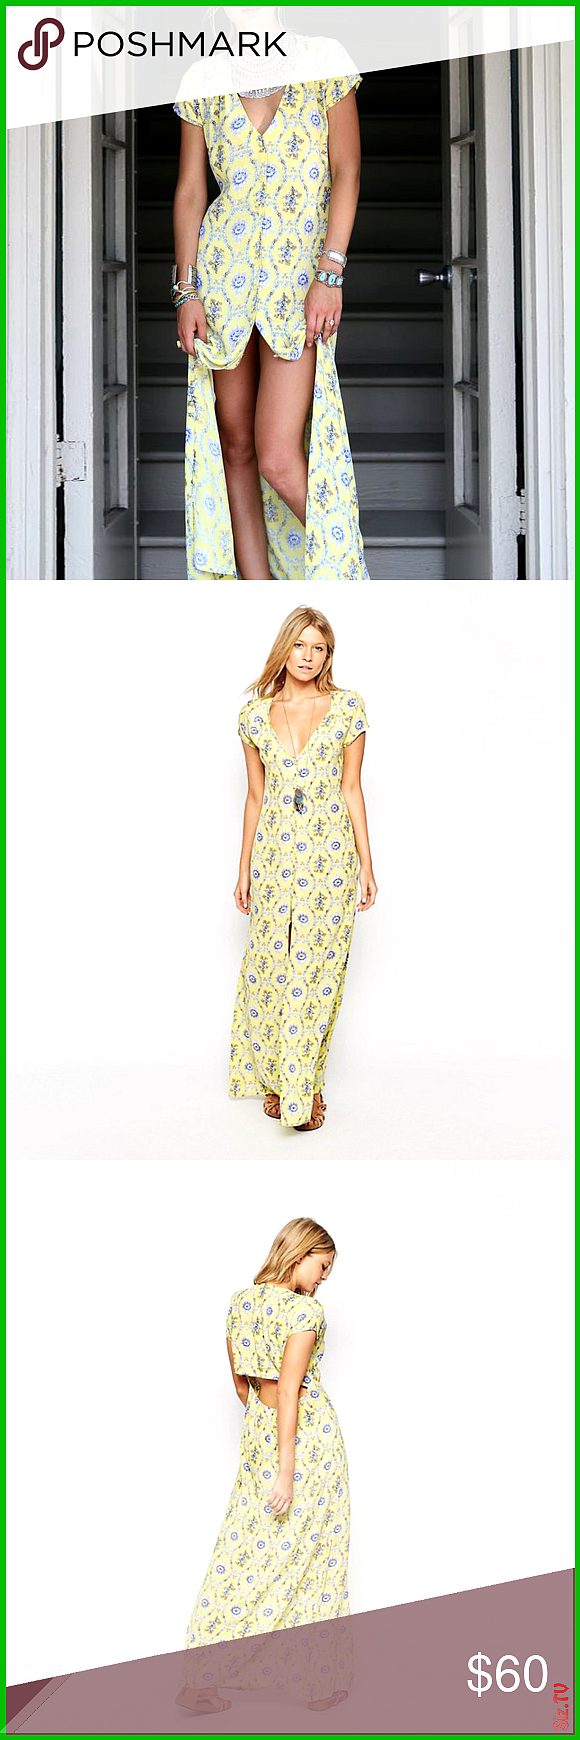 Flynn Skye floral button-down  Eterie  maxi dress In sunny Yellow Delight print reminiscent of Victo...